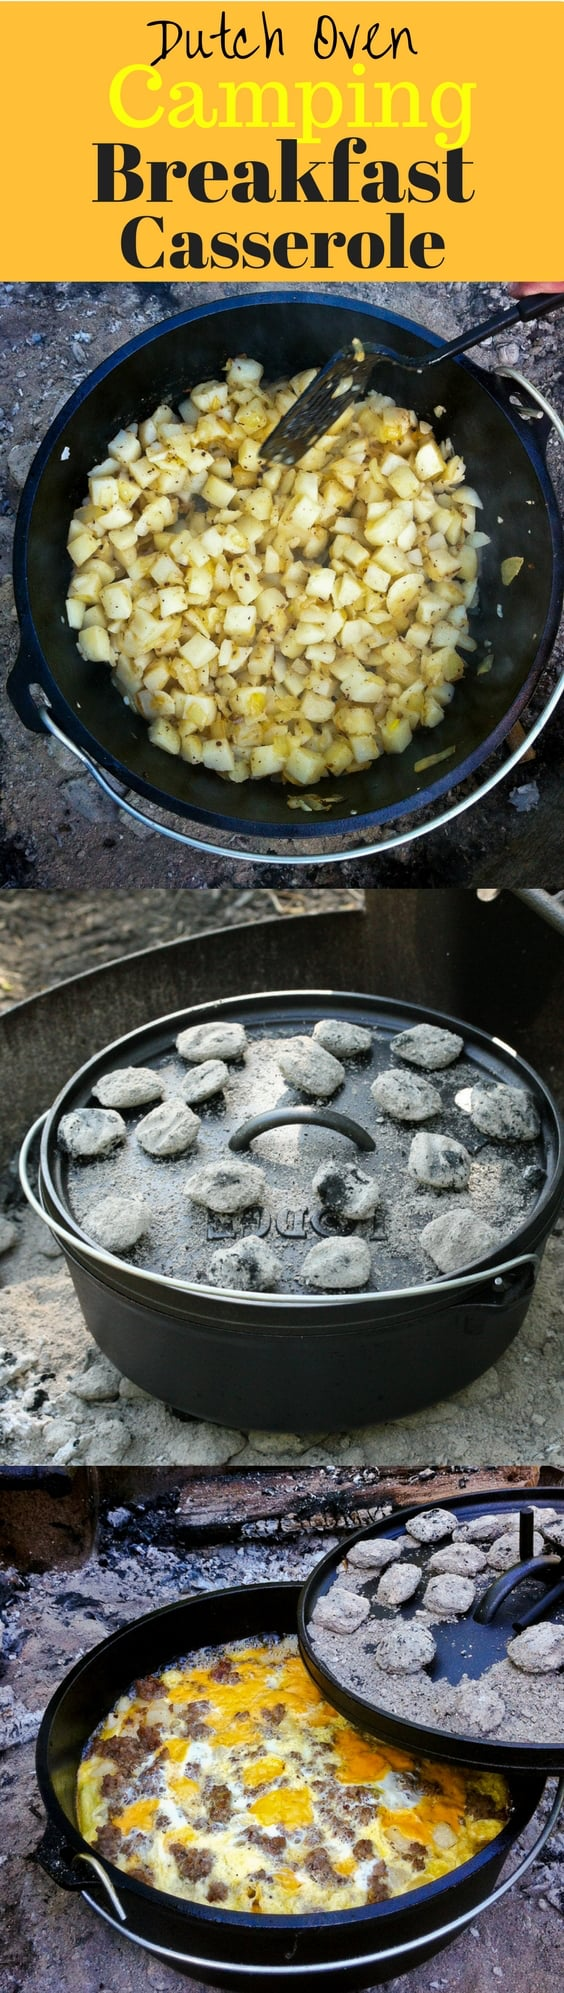 Mountain Man Breakfast Casserole - a hearty breakfast of sausage, potatoes, onions, cheese and eggs cooked in a LODGE Dutch Oven over hot coals. The perfect camping breakfast before a day of hiking, and enjoying the great outdoors! | www.savingdessert.com